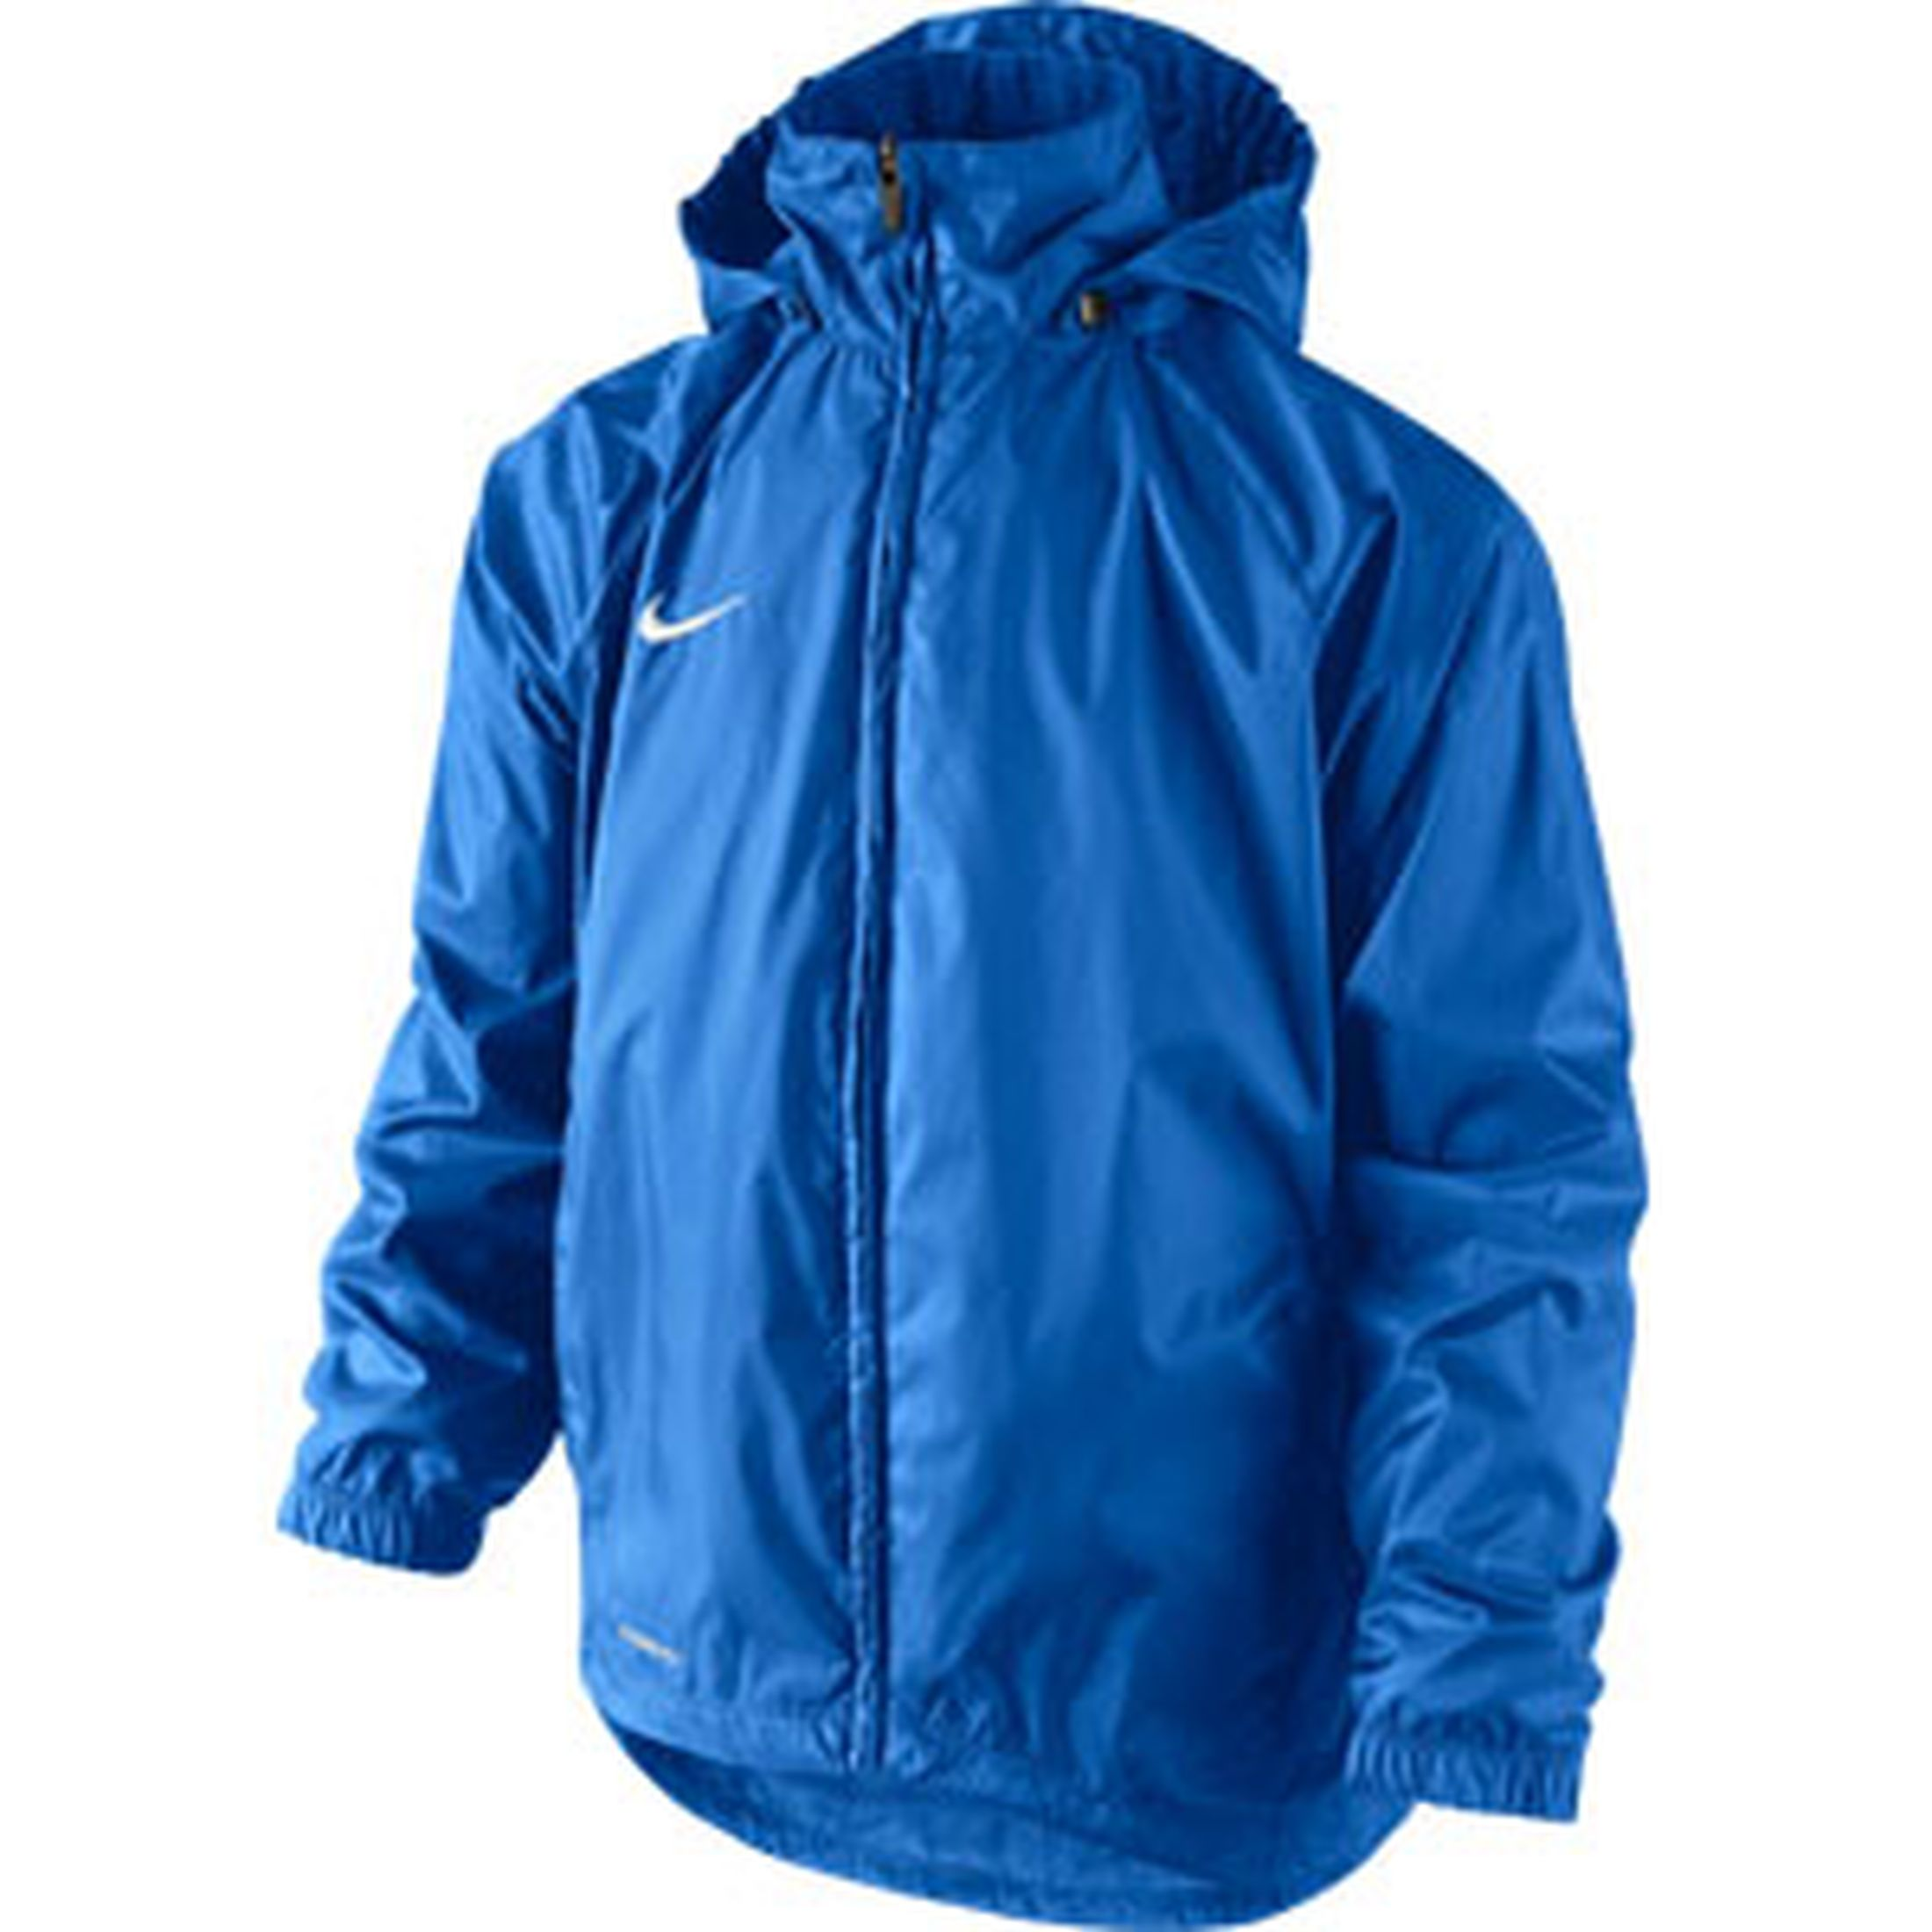 COUPE VENT NIKE FOUNDATION 12 ENFANT | EKINSPORT